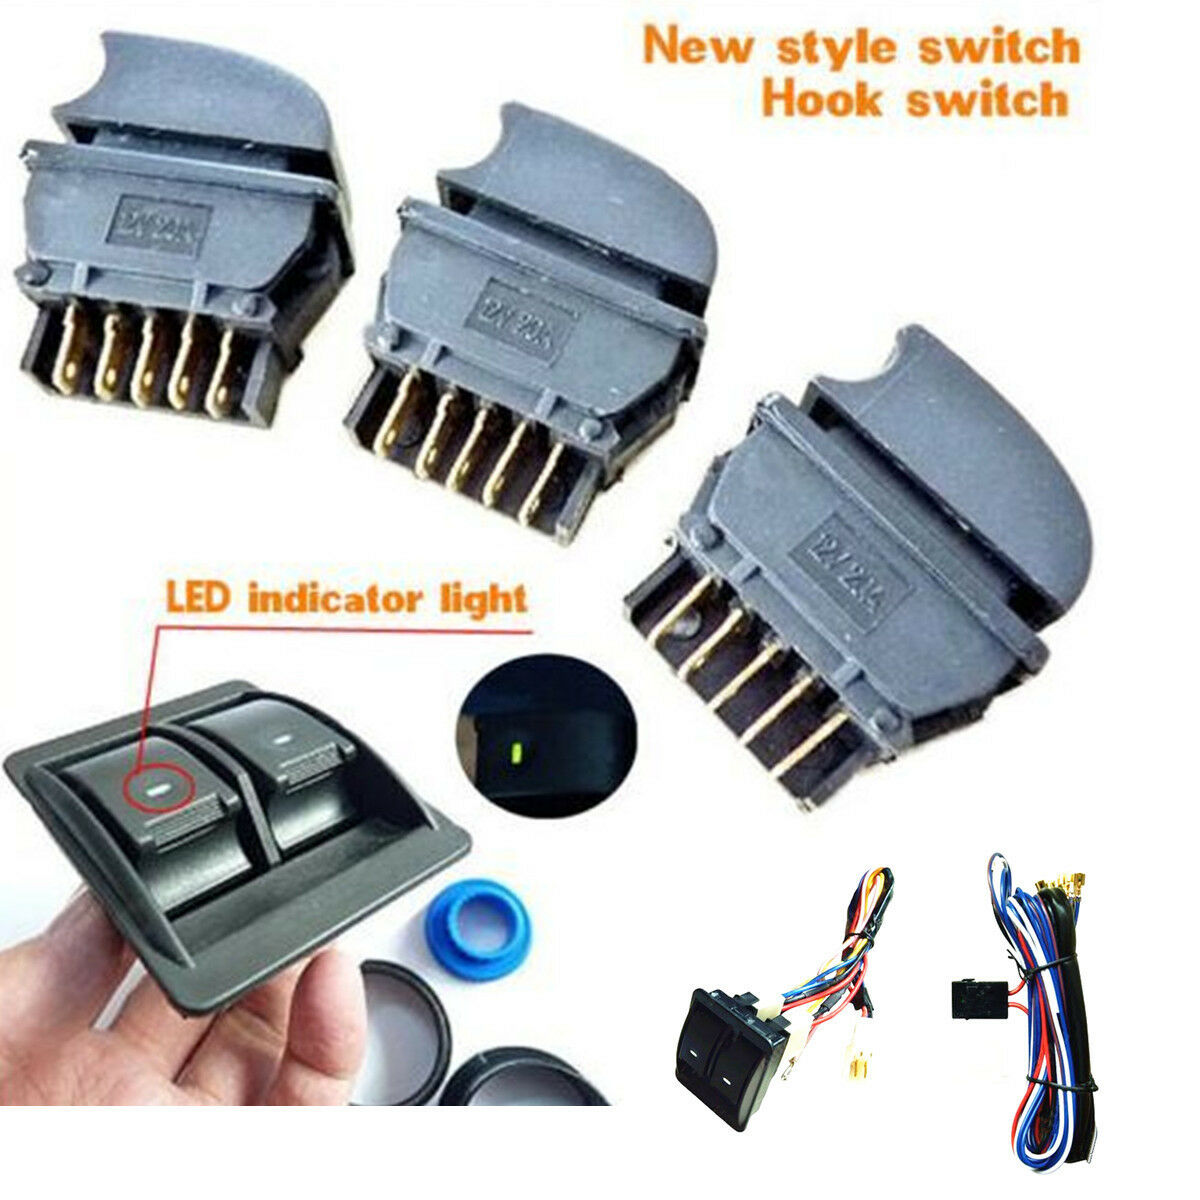 s l1600 12v car power window switch with wire harness universal kits universal 12 volt wiring harness at bakdesigns.co